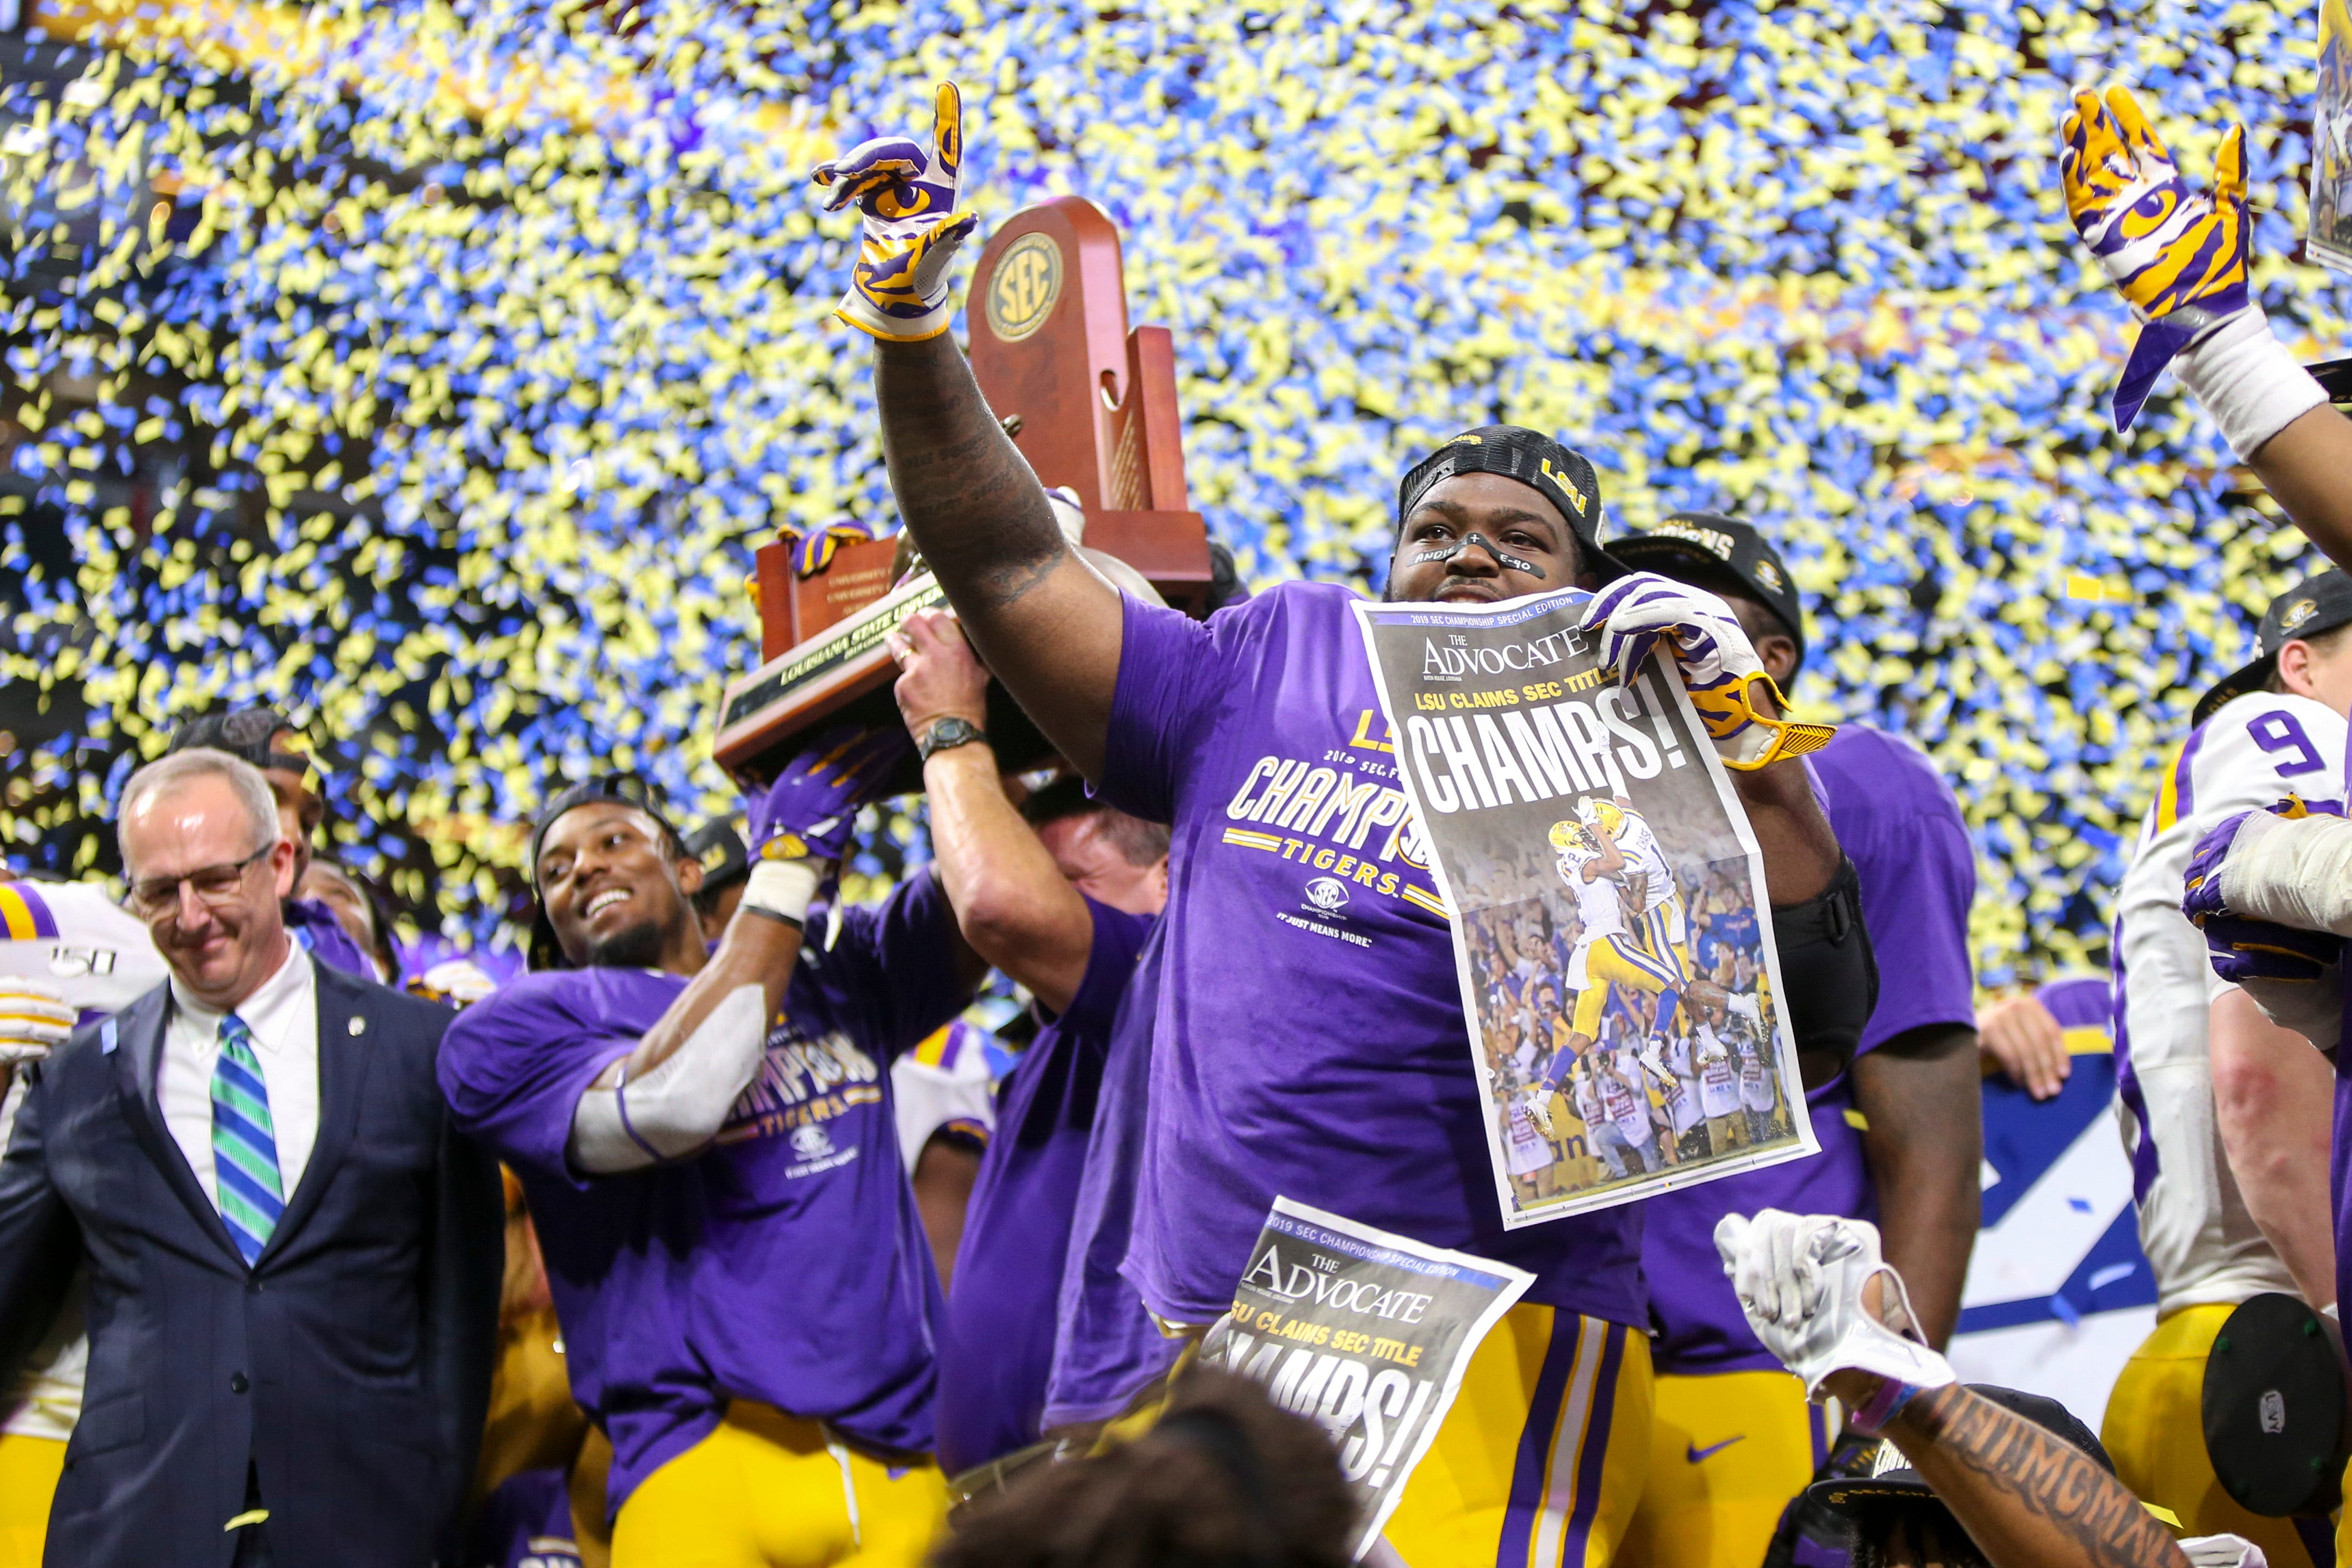 LSU keeps No. 1 ranking ahead of Ohio State in the final Amway Coaches Poll of regular season